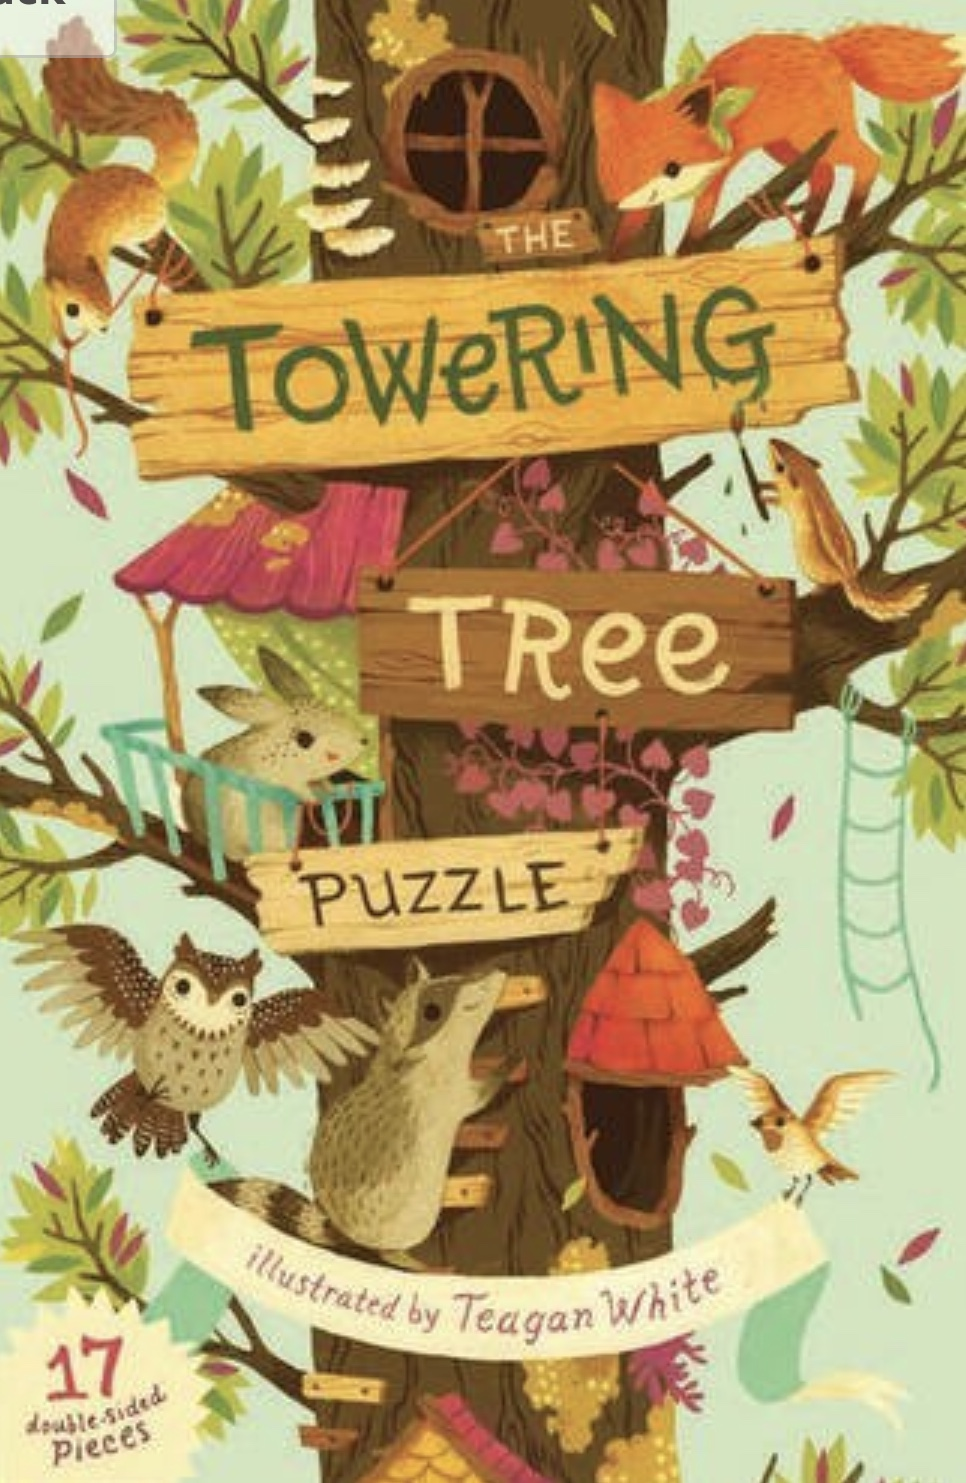 Towering Tree Puzzle Illustrated by Teagan White